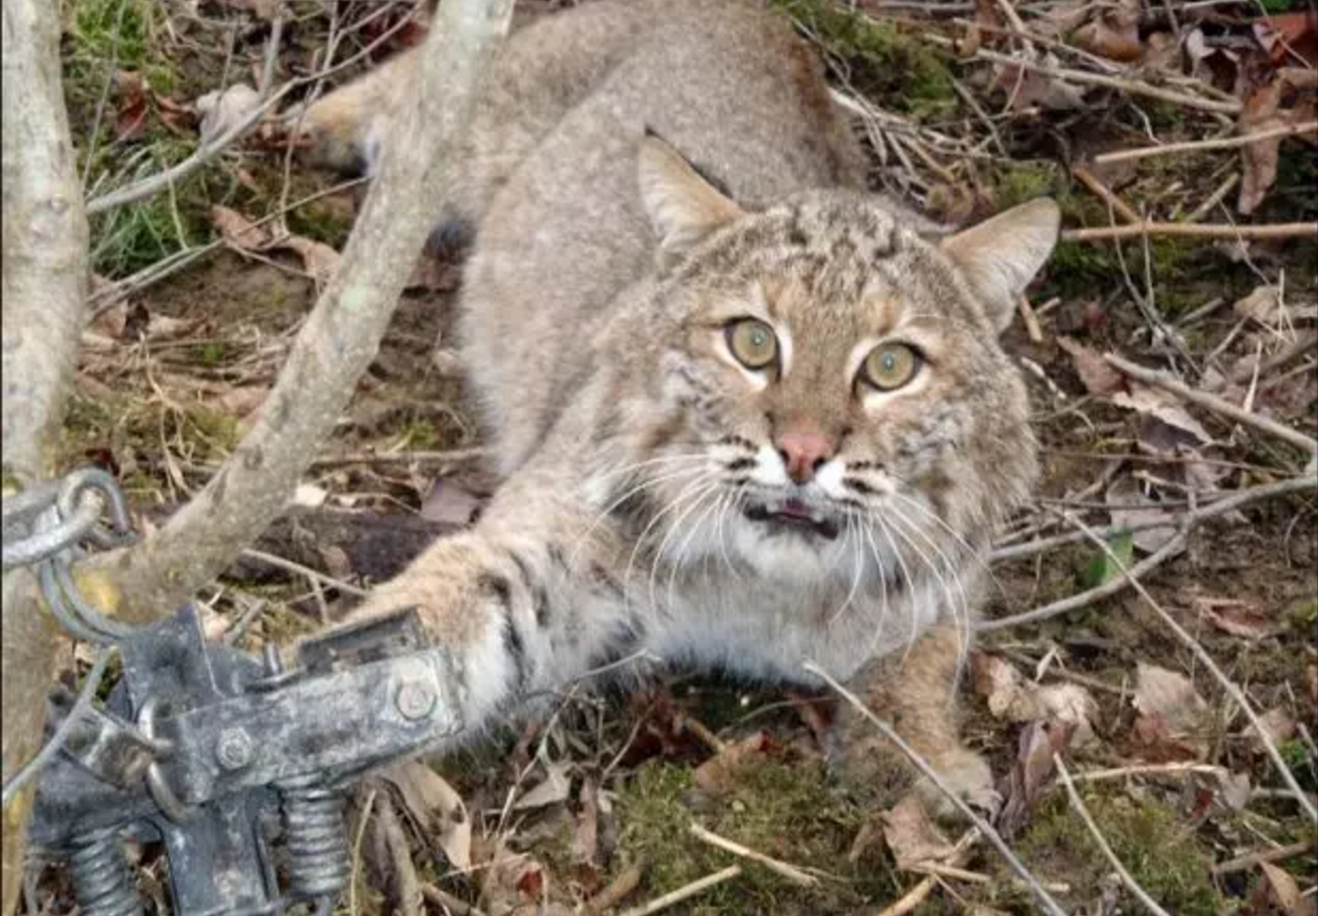 'Secret' Federal Agency Admits Killing 3.2 Million Wild Animals in U.S. Last Year Alone